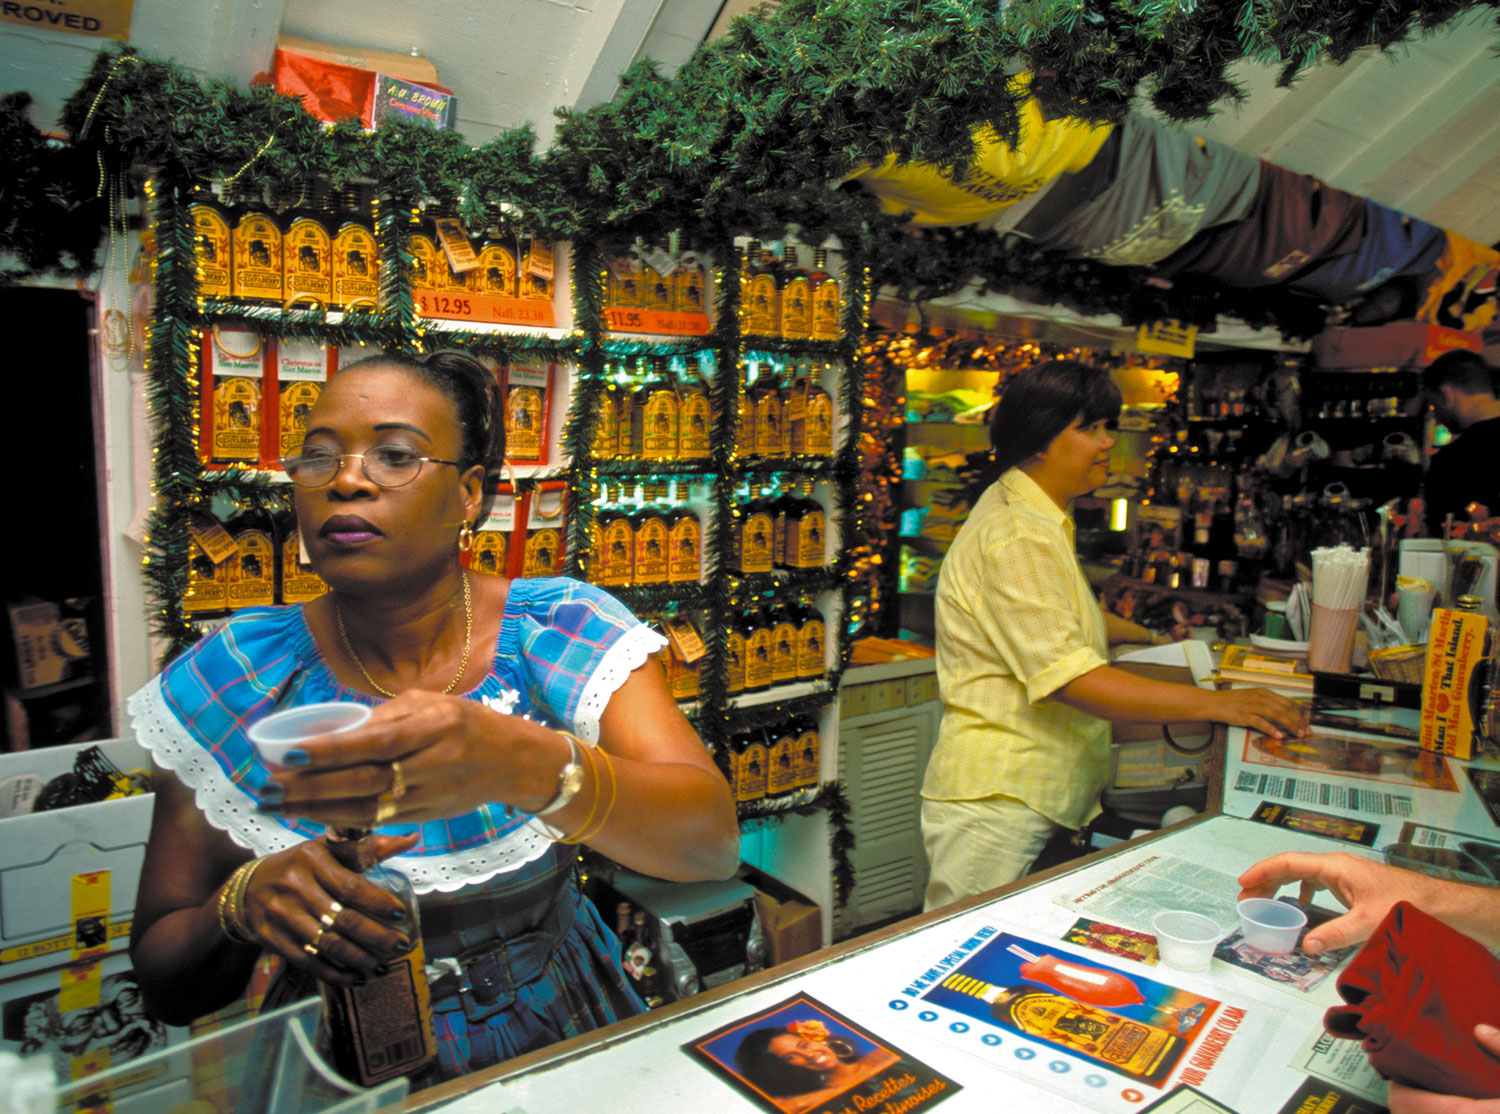 Customers sample the goods at the Guavaberry Shop on Philipsburg's Front Street. Photograph by Donald Nausbaum